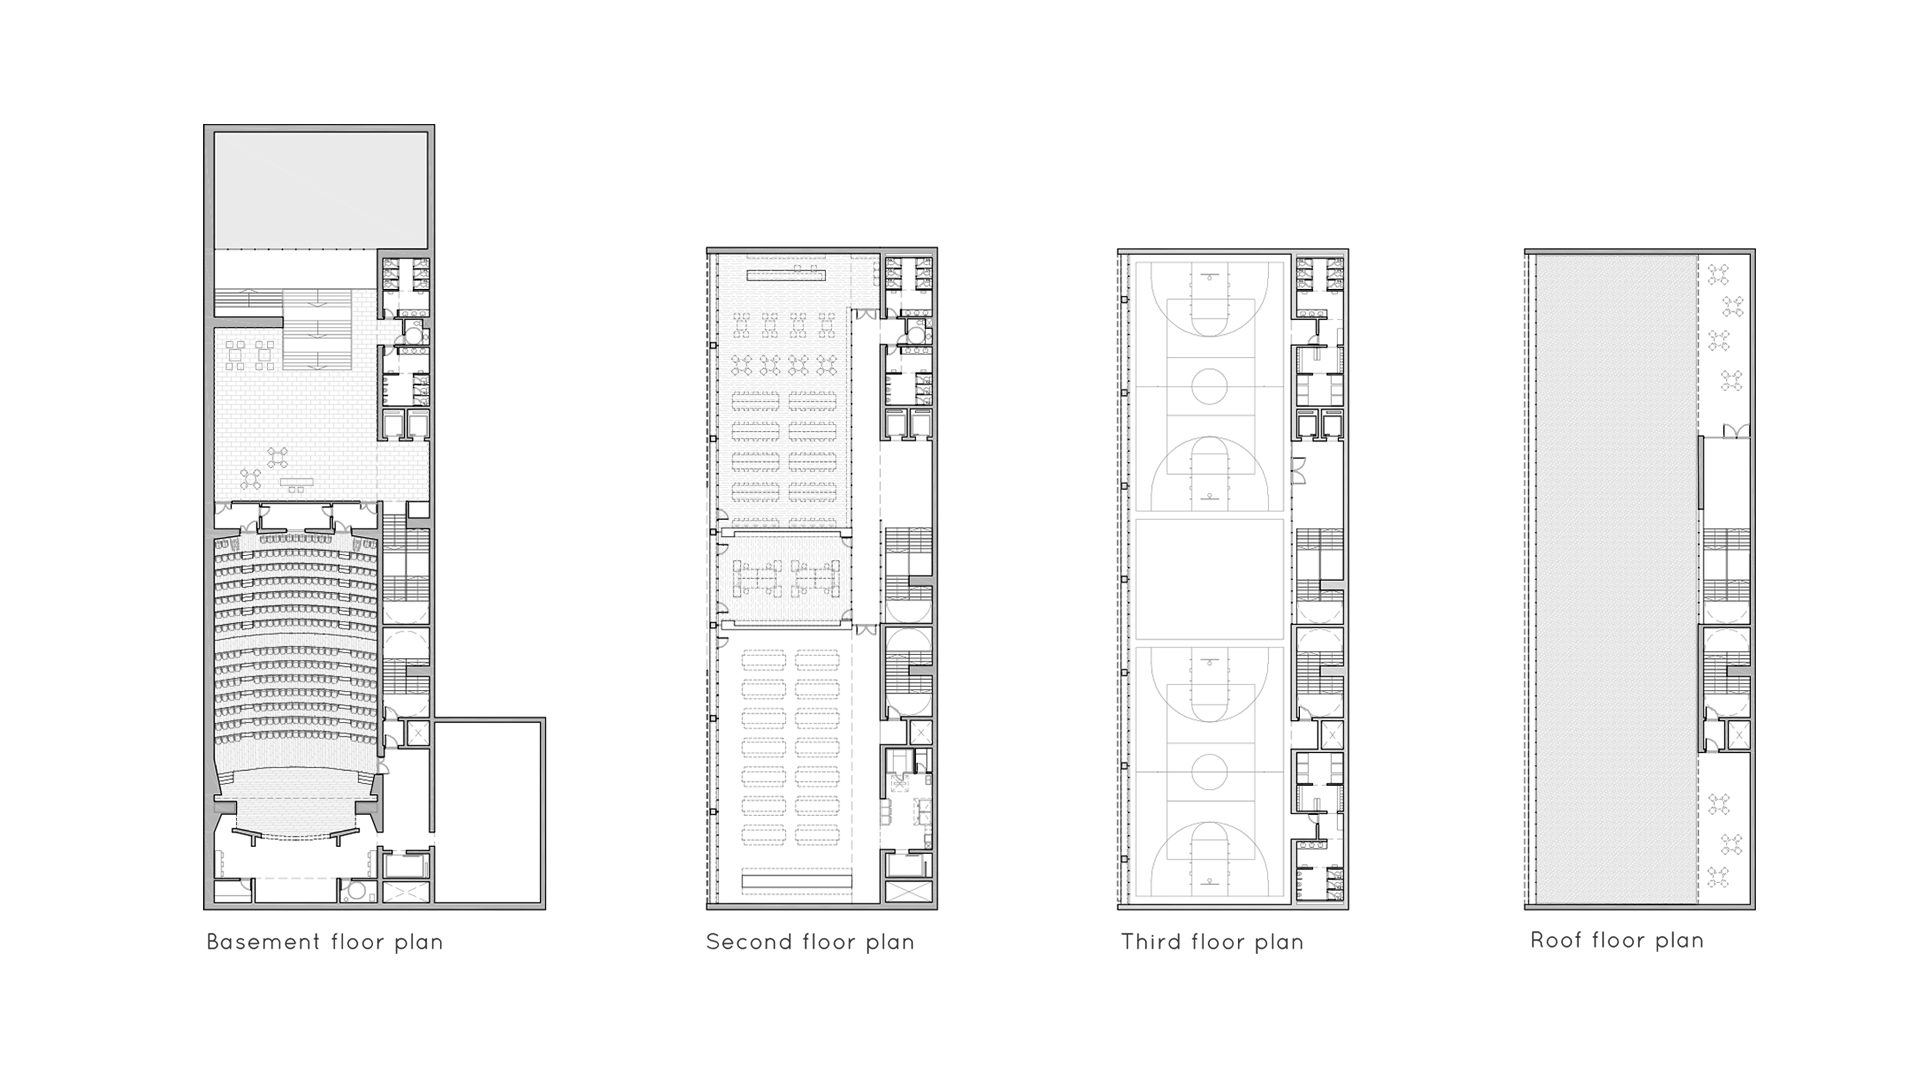 02_Tower-Plans